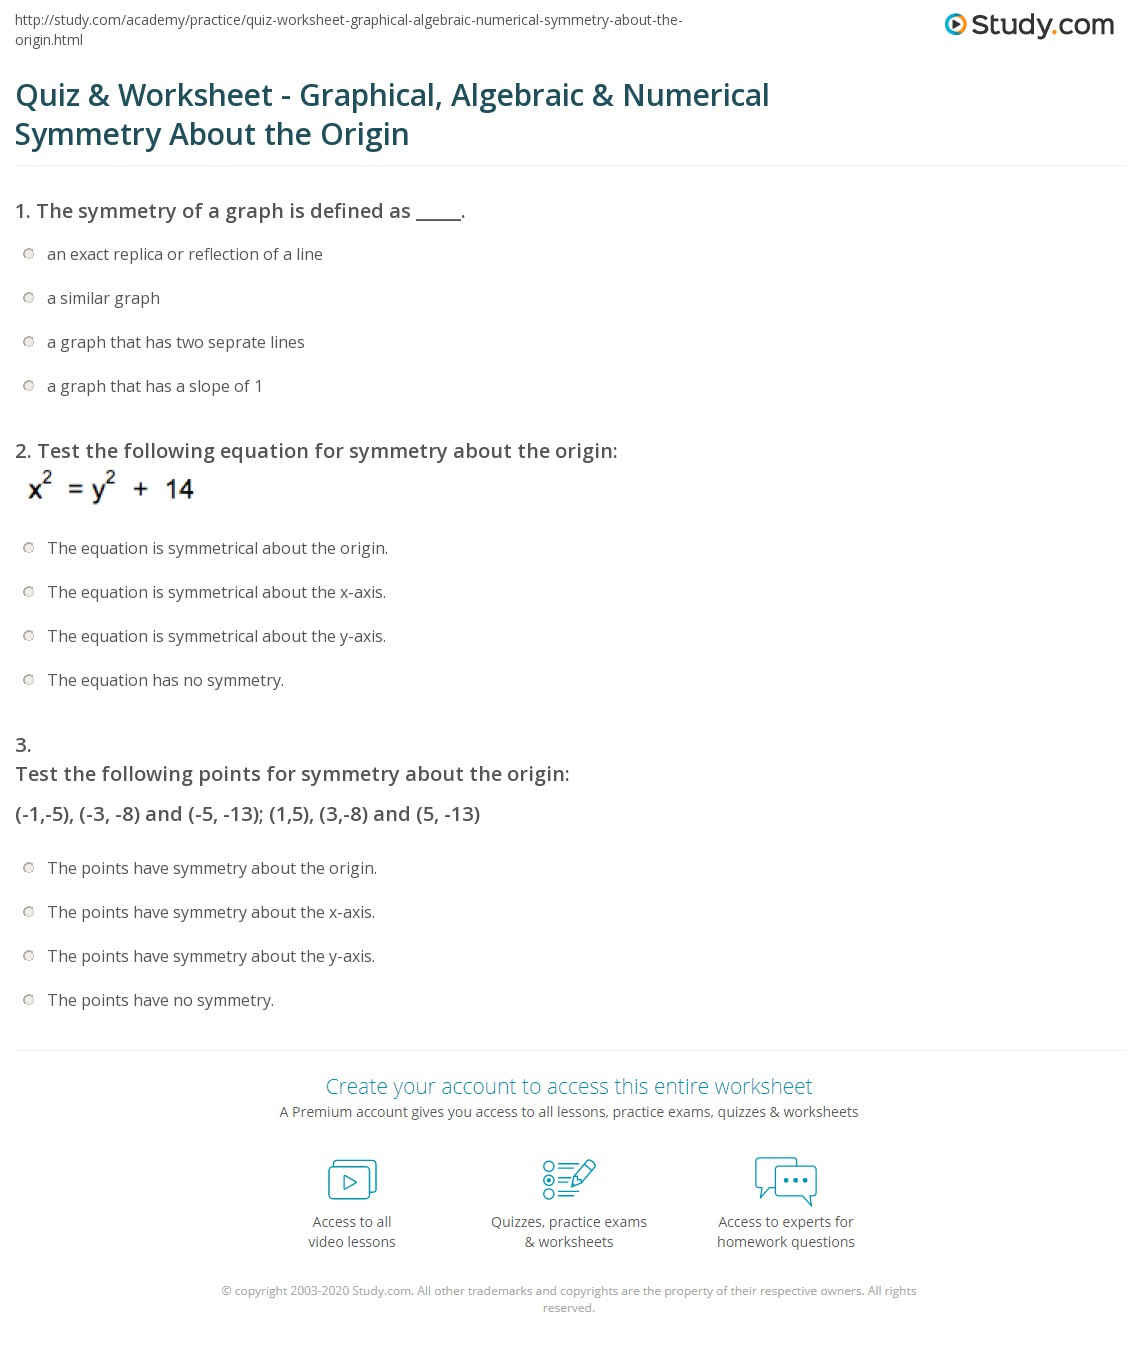 Quiz Worksheet Graphical Algebraic Numerical Symmetry About